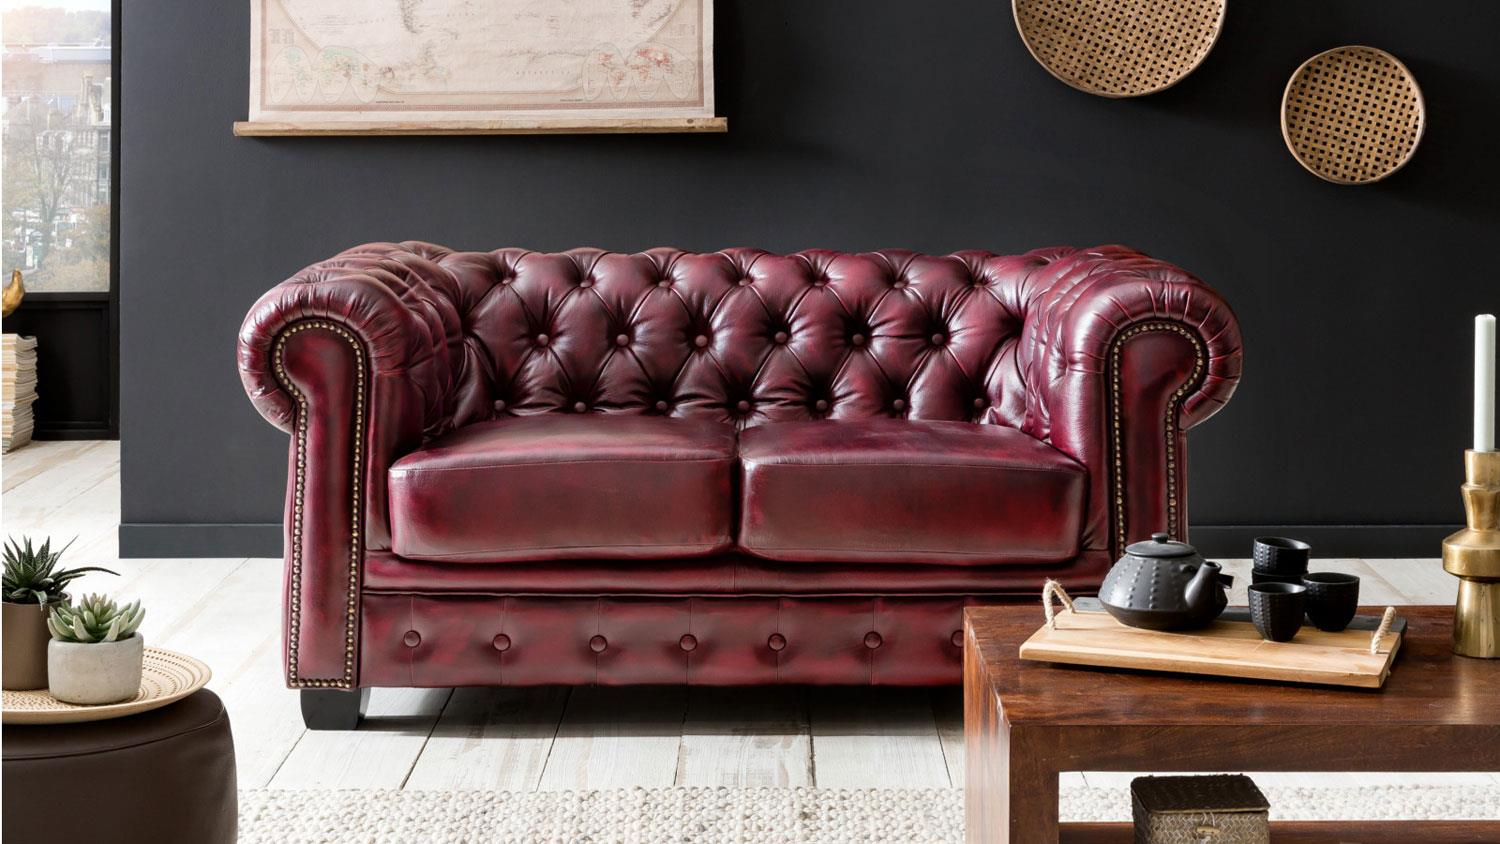 Chesterfield Sofa Leder Rot Chesterfield Sofa 2 Sitzer Leder Rot Antik Luxus